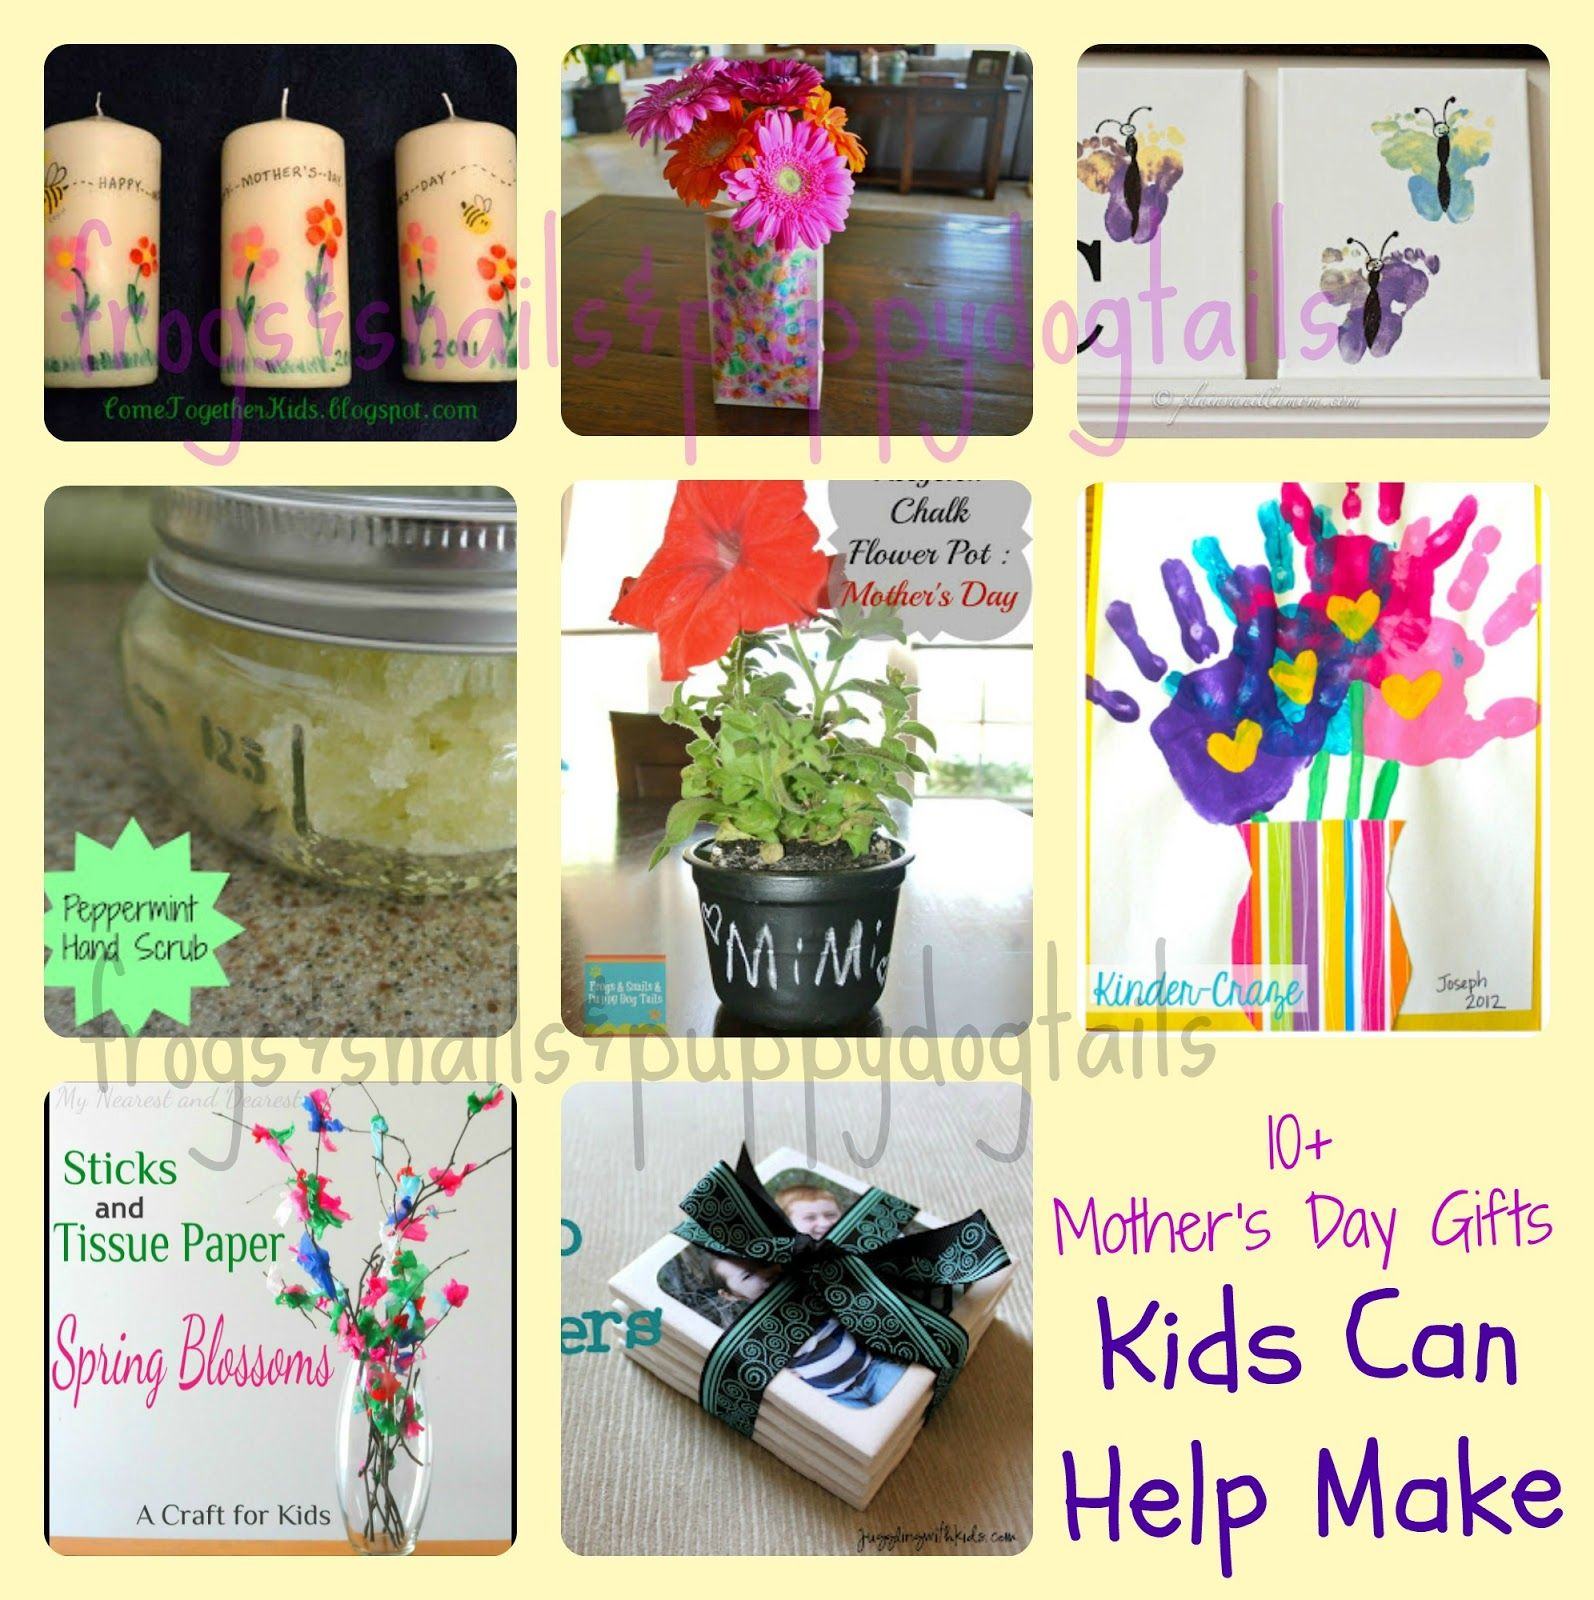 10 Mothers Day Craft Gift Ideas Kids Can Help Make